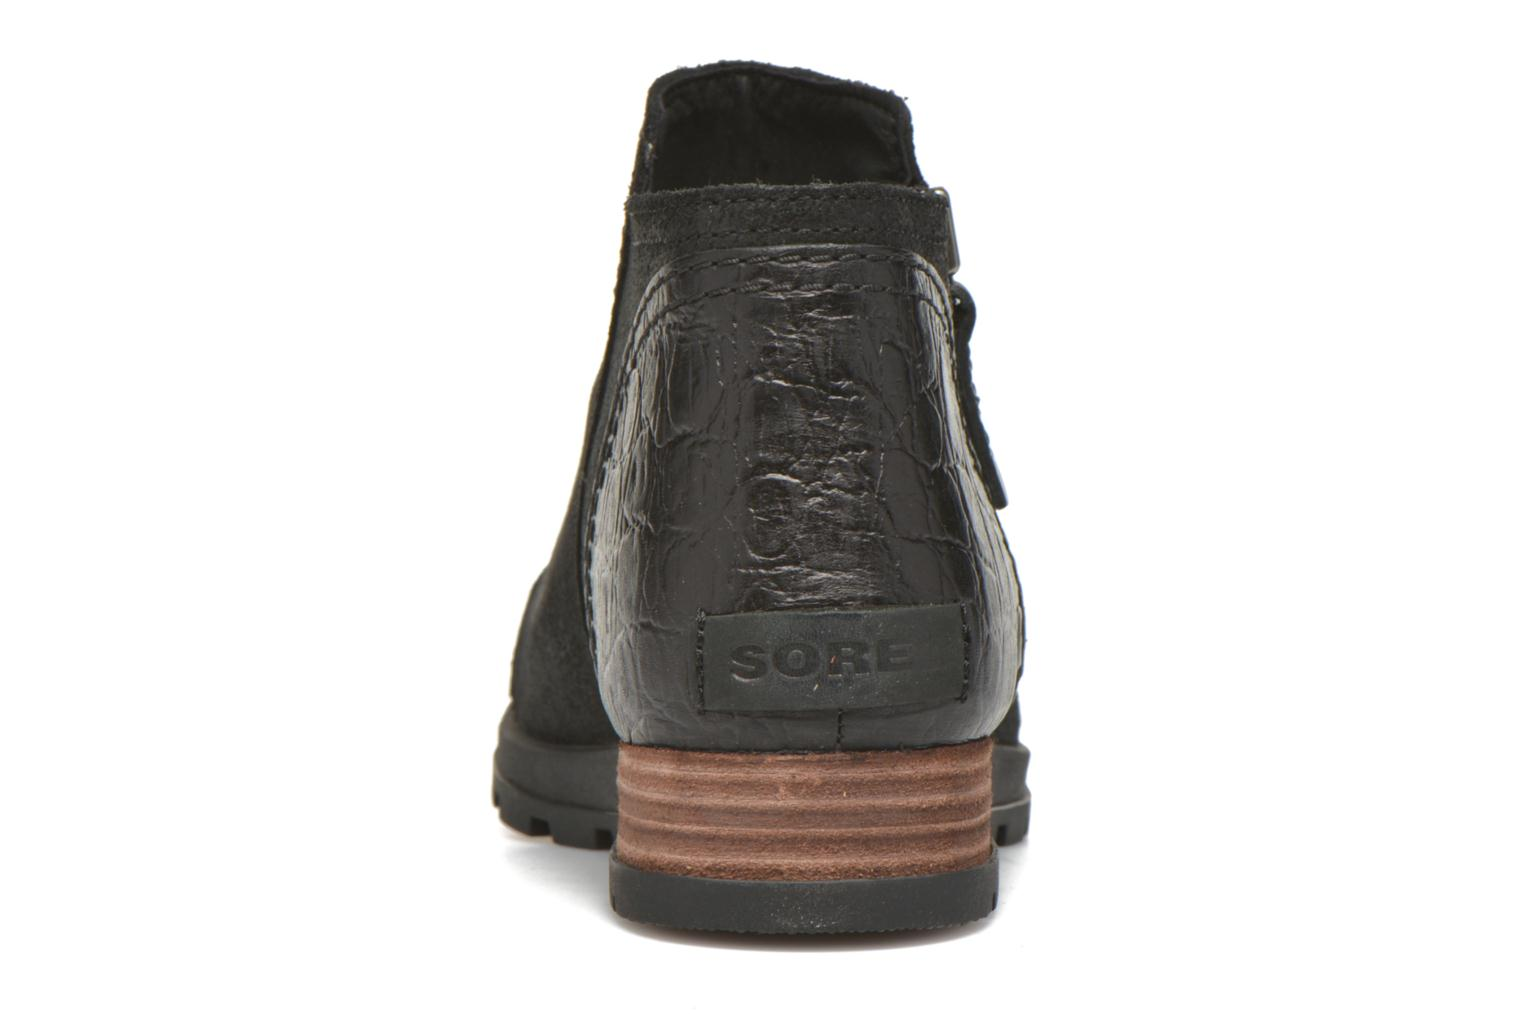 Bottines et boots Sorel Sorel Major Low Noir vue droite